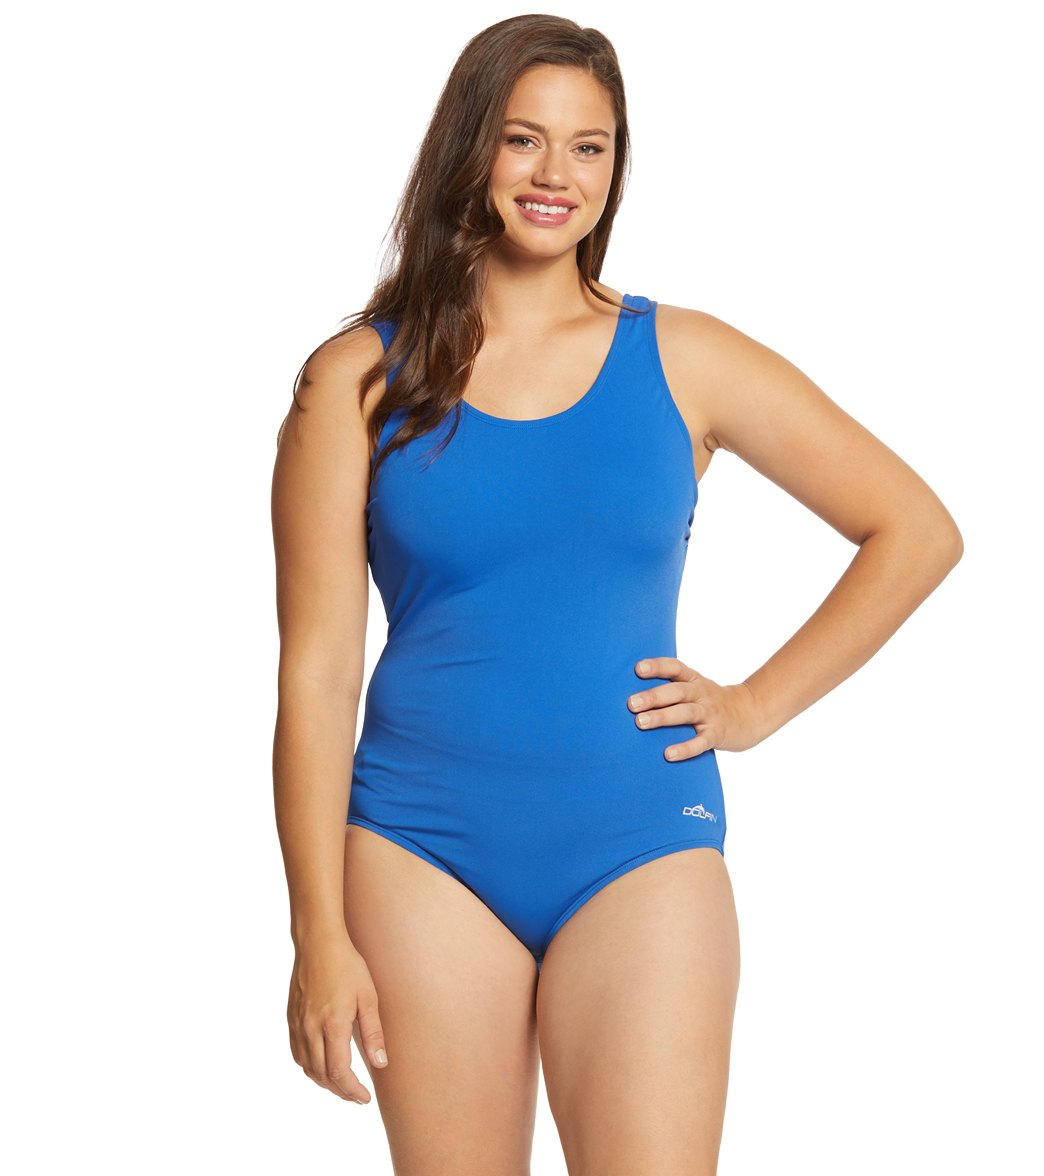 880c3a8a5d Dolfin Women s Plus Size AquaShape Solid Moderate Scoop Back One Piece  Swimsuit at SwimOutlet.com - Free Shipping